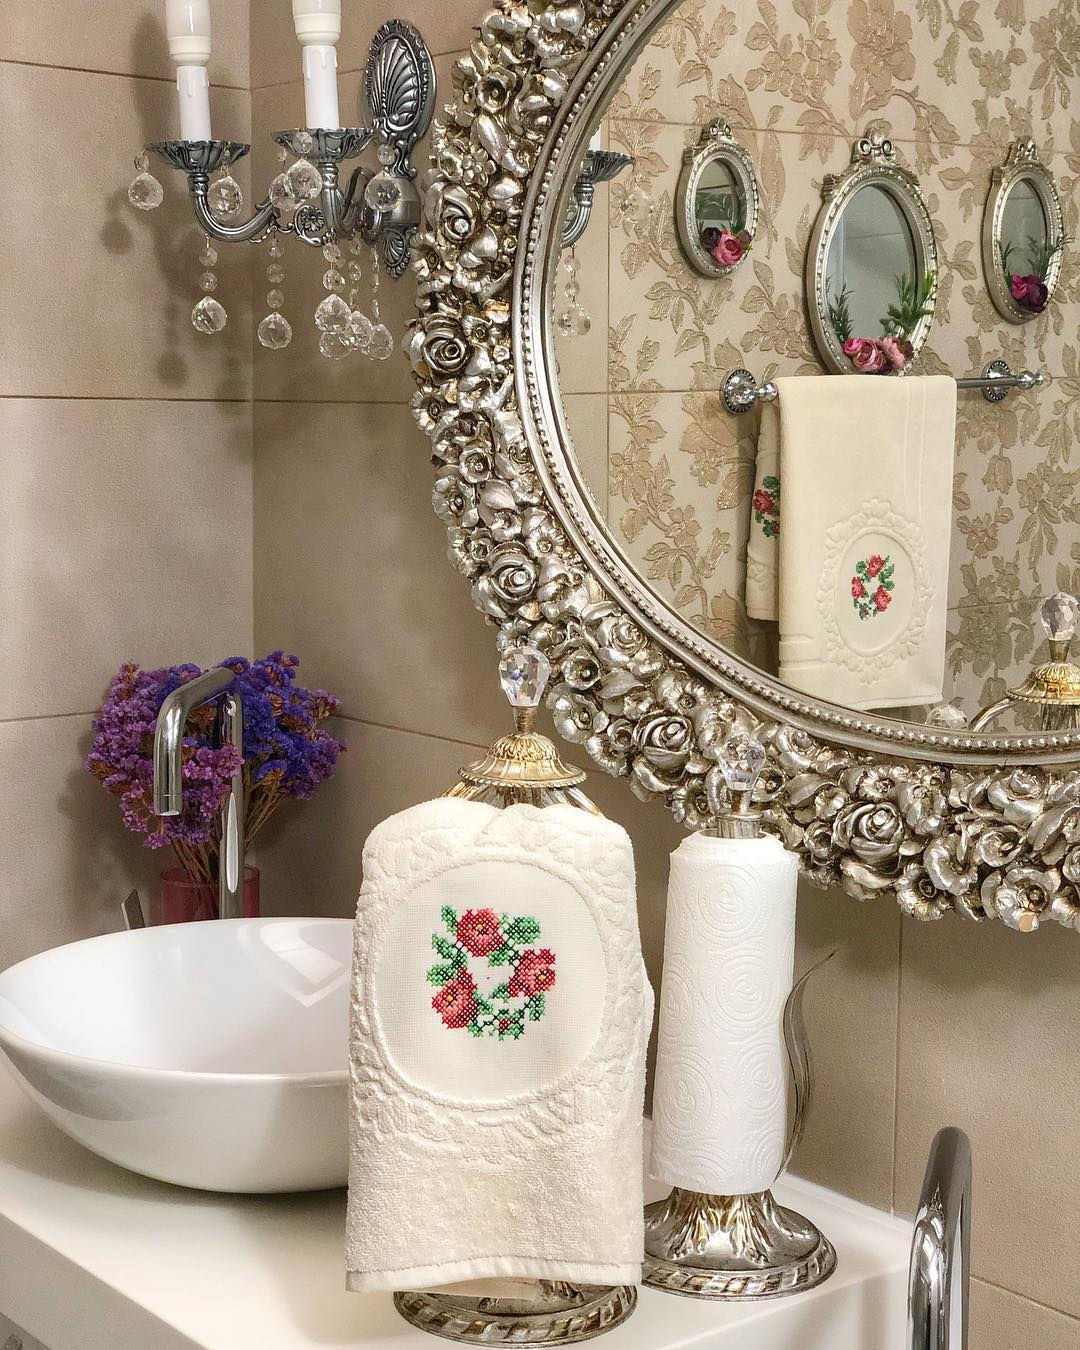 Bathroom decoration 2019 (18)